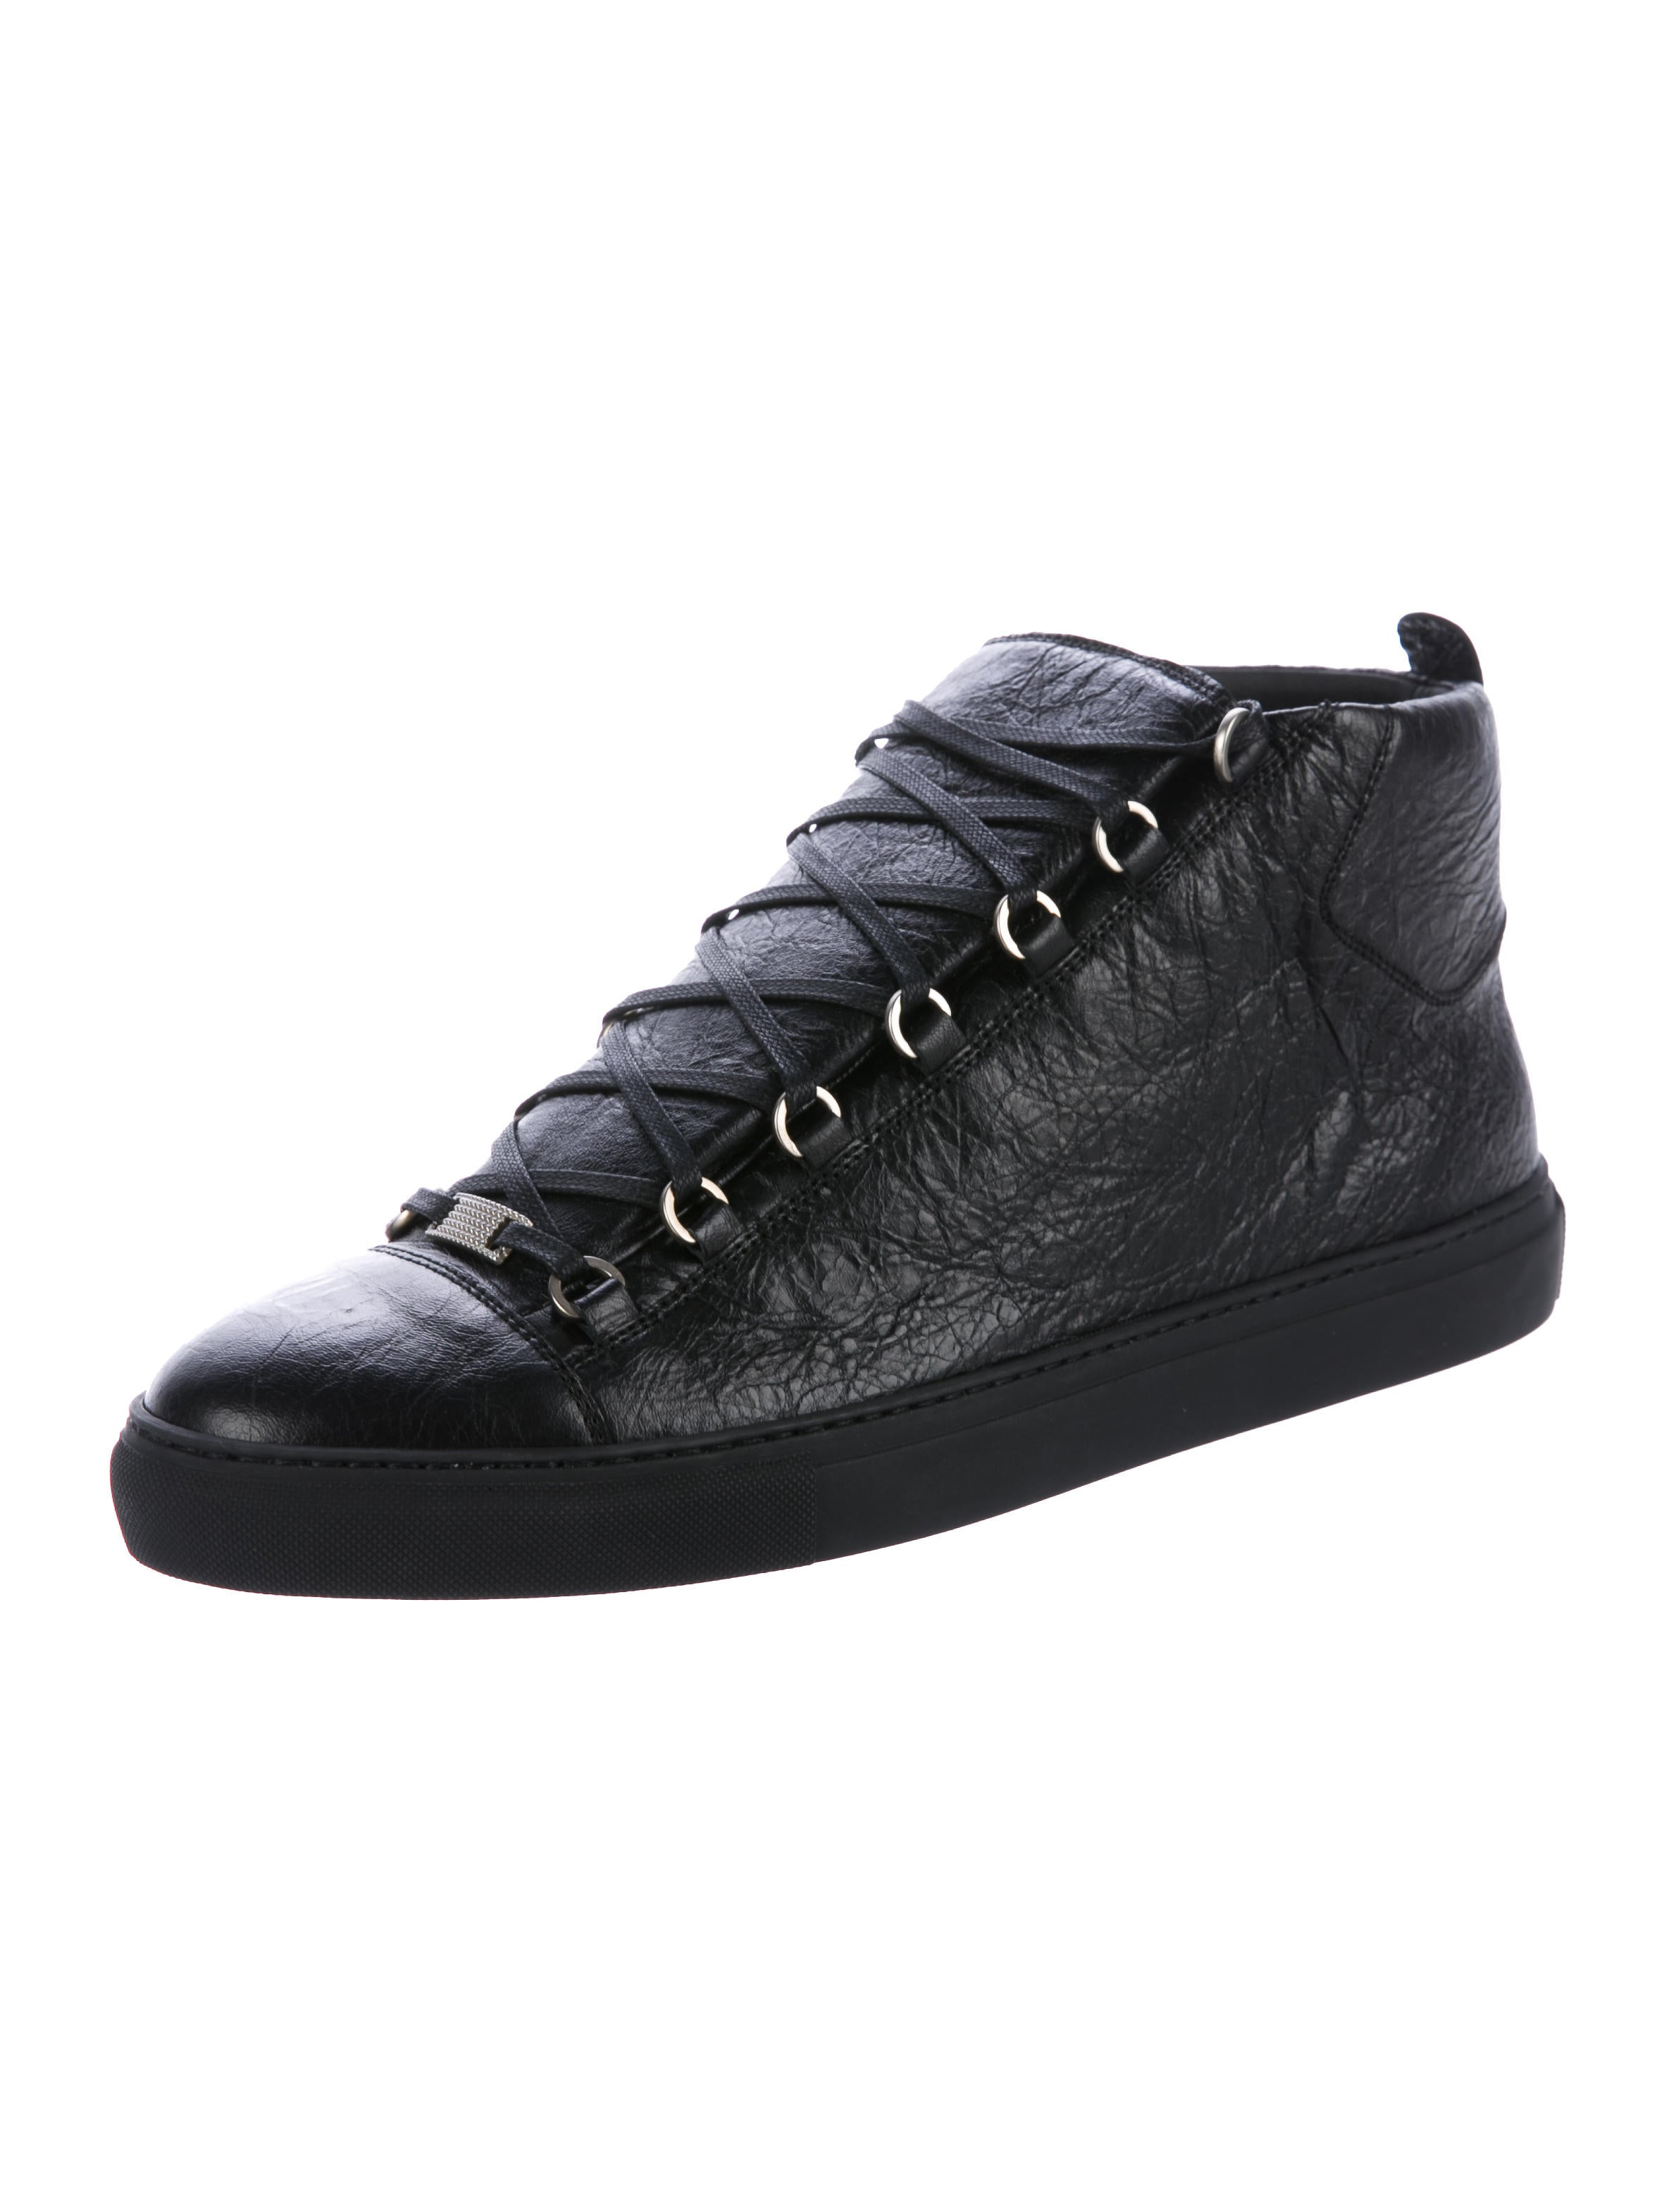 balenciaga arena leather sneakers w tags shoes bal57296 the realreal. Black Bedroom Furniture Sets. Home Design Ideas